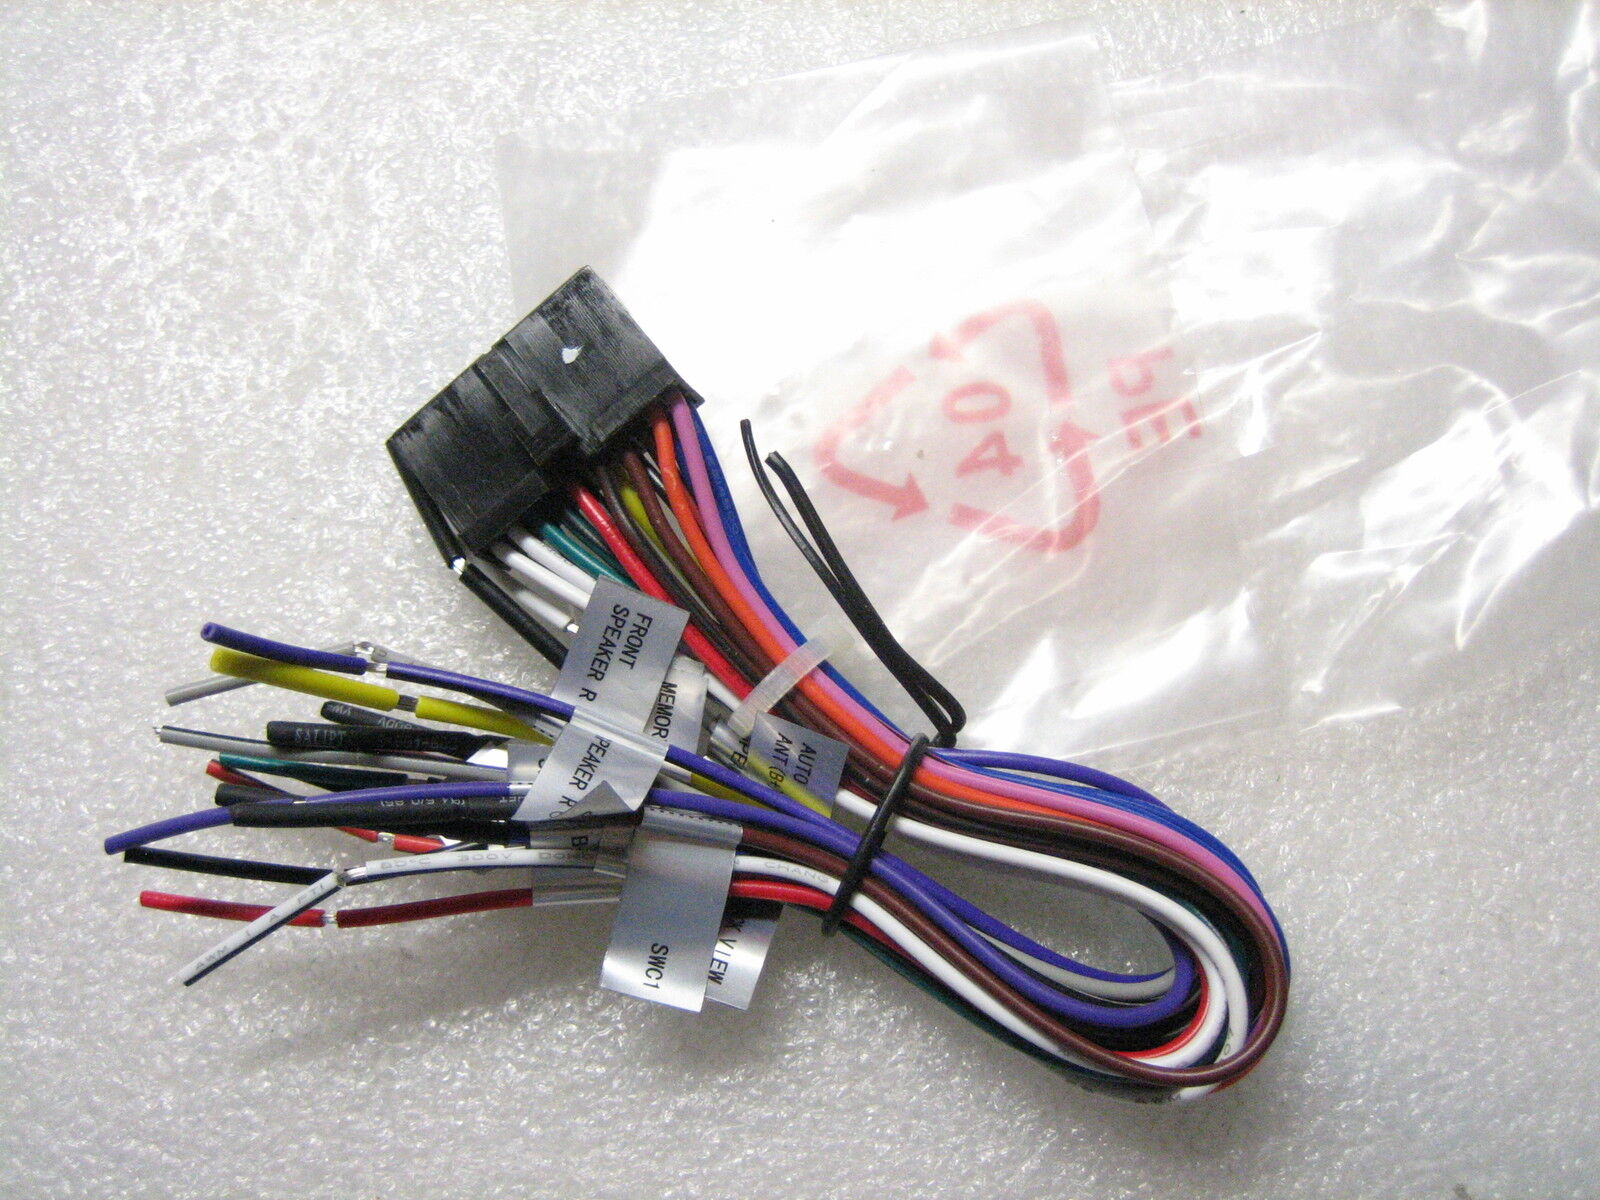 $_57?set_id=880000500F wire harness xdvd210,xdvd210bt,xdvd110bt,dv704i,dv704bi,xdvd1170 dual xdvd210bt wire harness at n-0.co